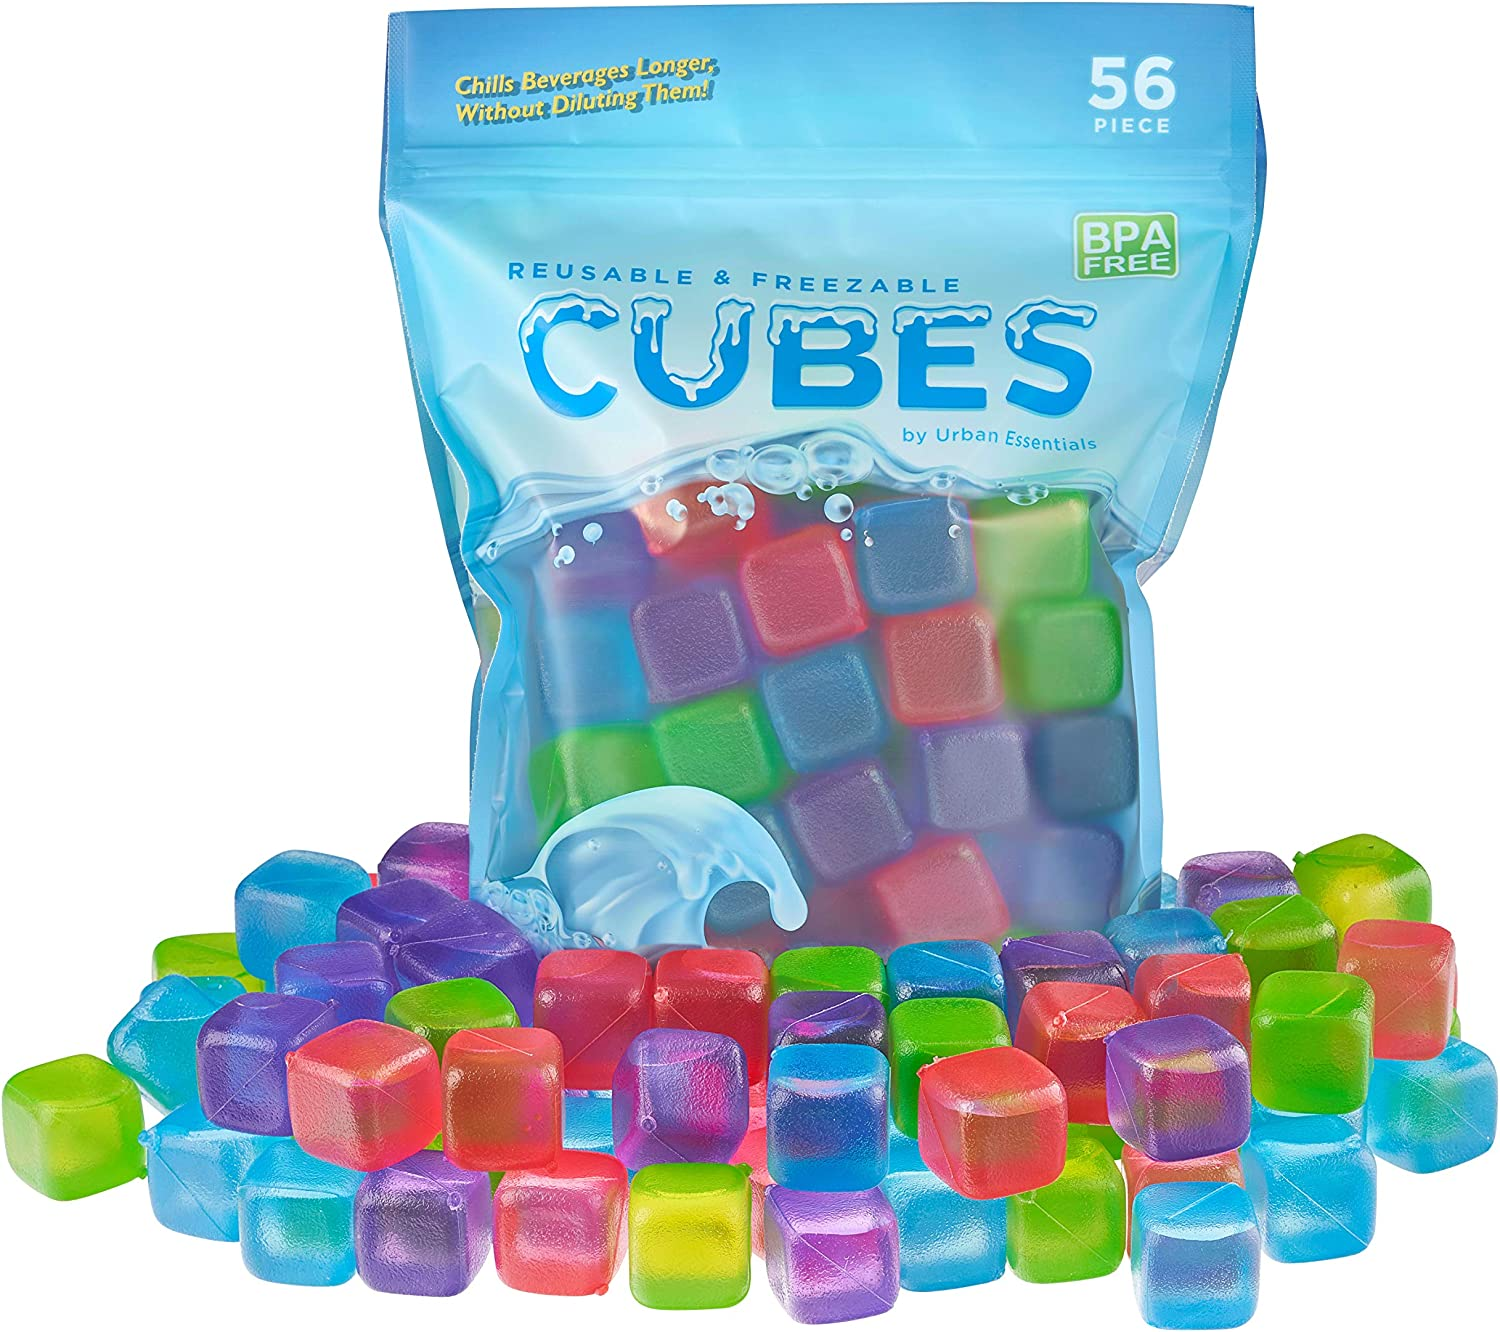 10 Ice Cubes Fake Ice Cubes Artificial Ice Cubes